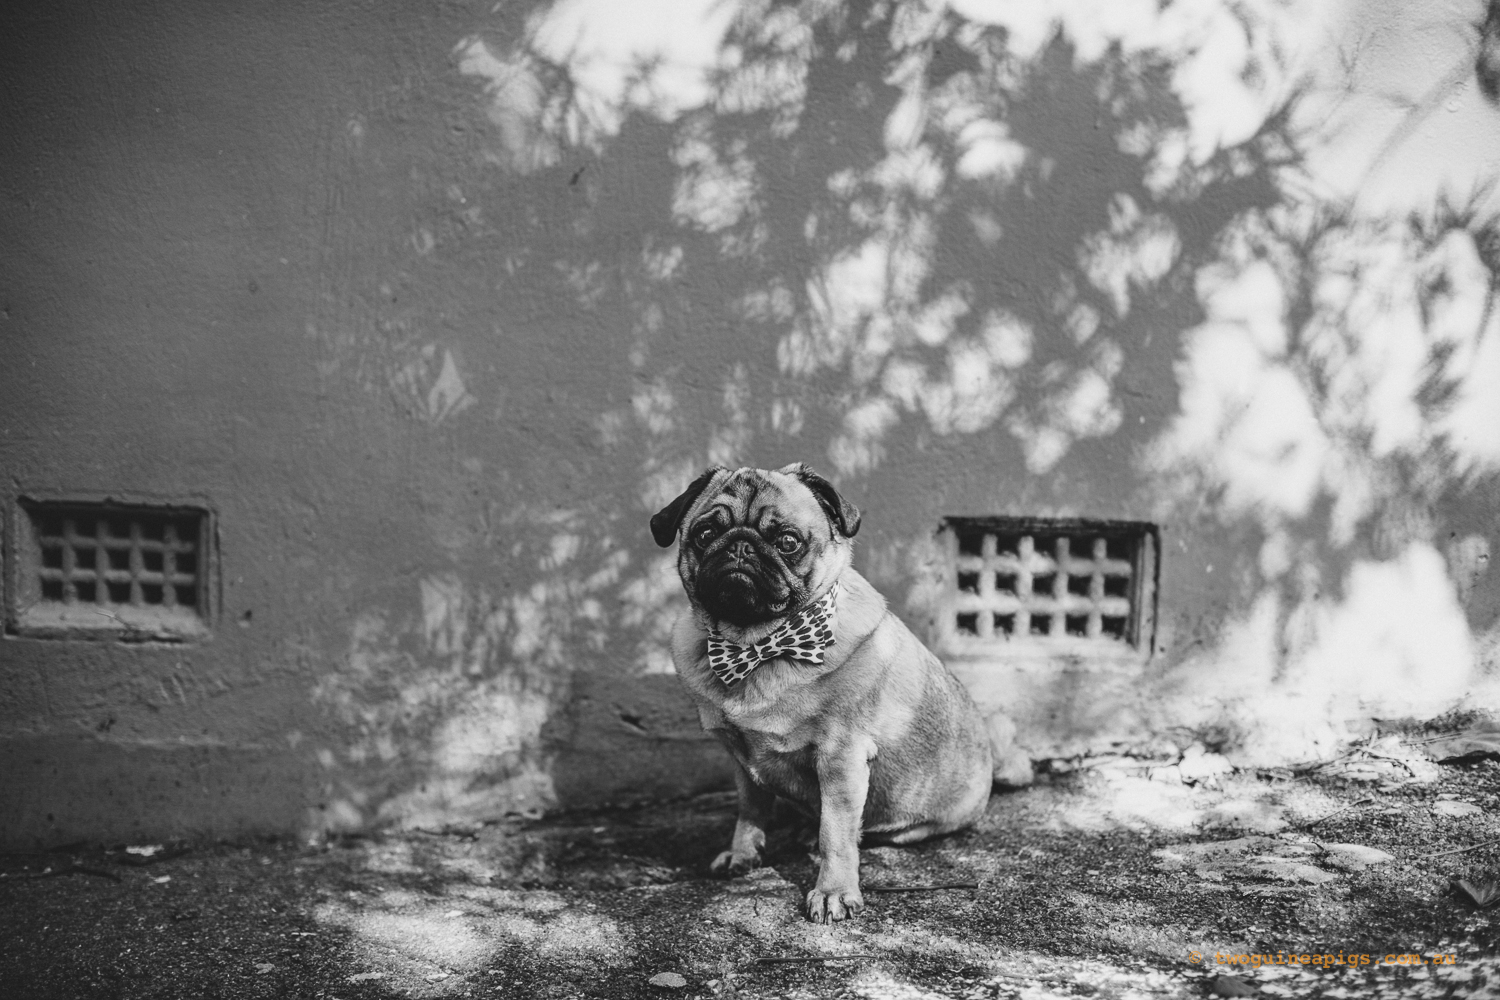 twoguineapigs_pet_photography_ohjaffa_pug_dog_animal_darlinghurst_bowtie_graffiti